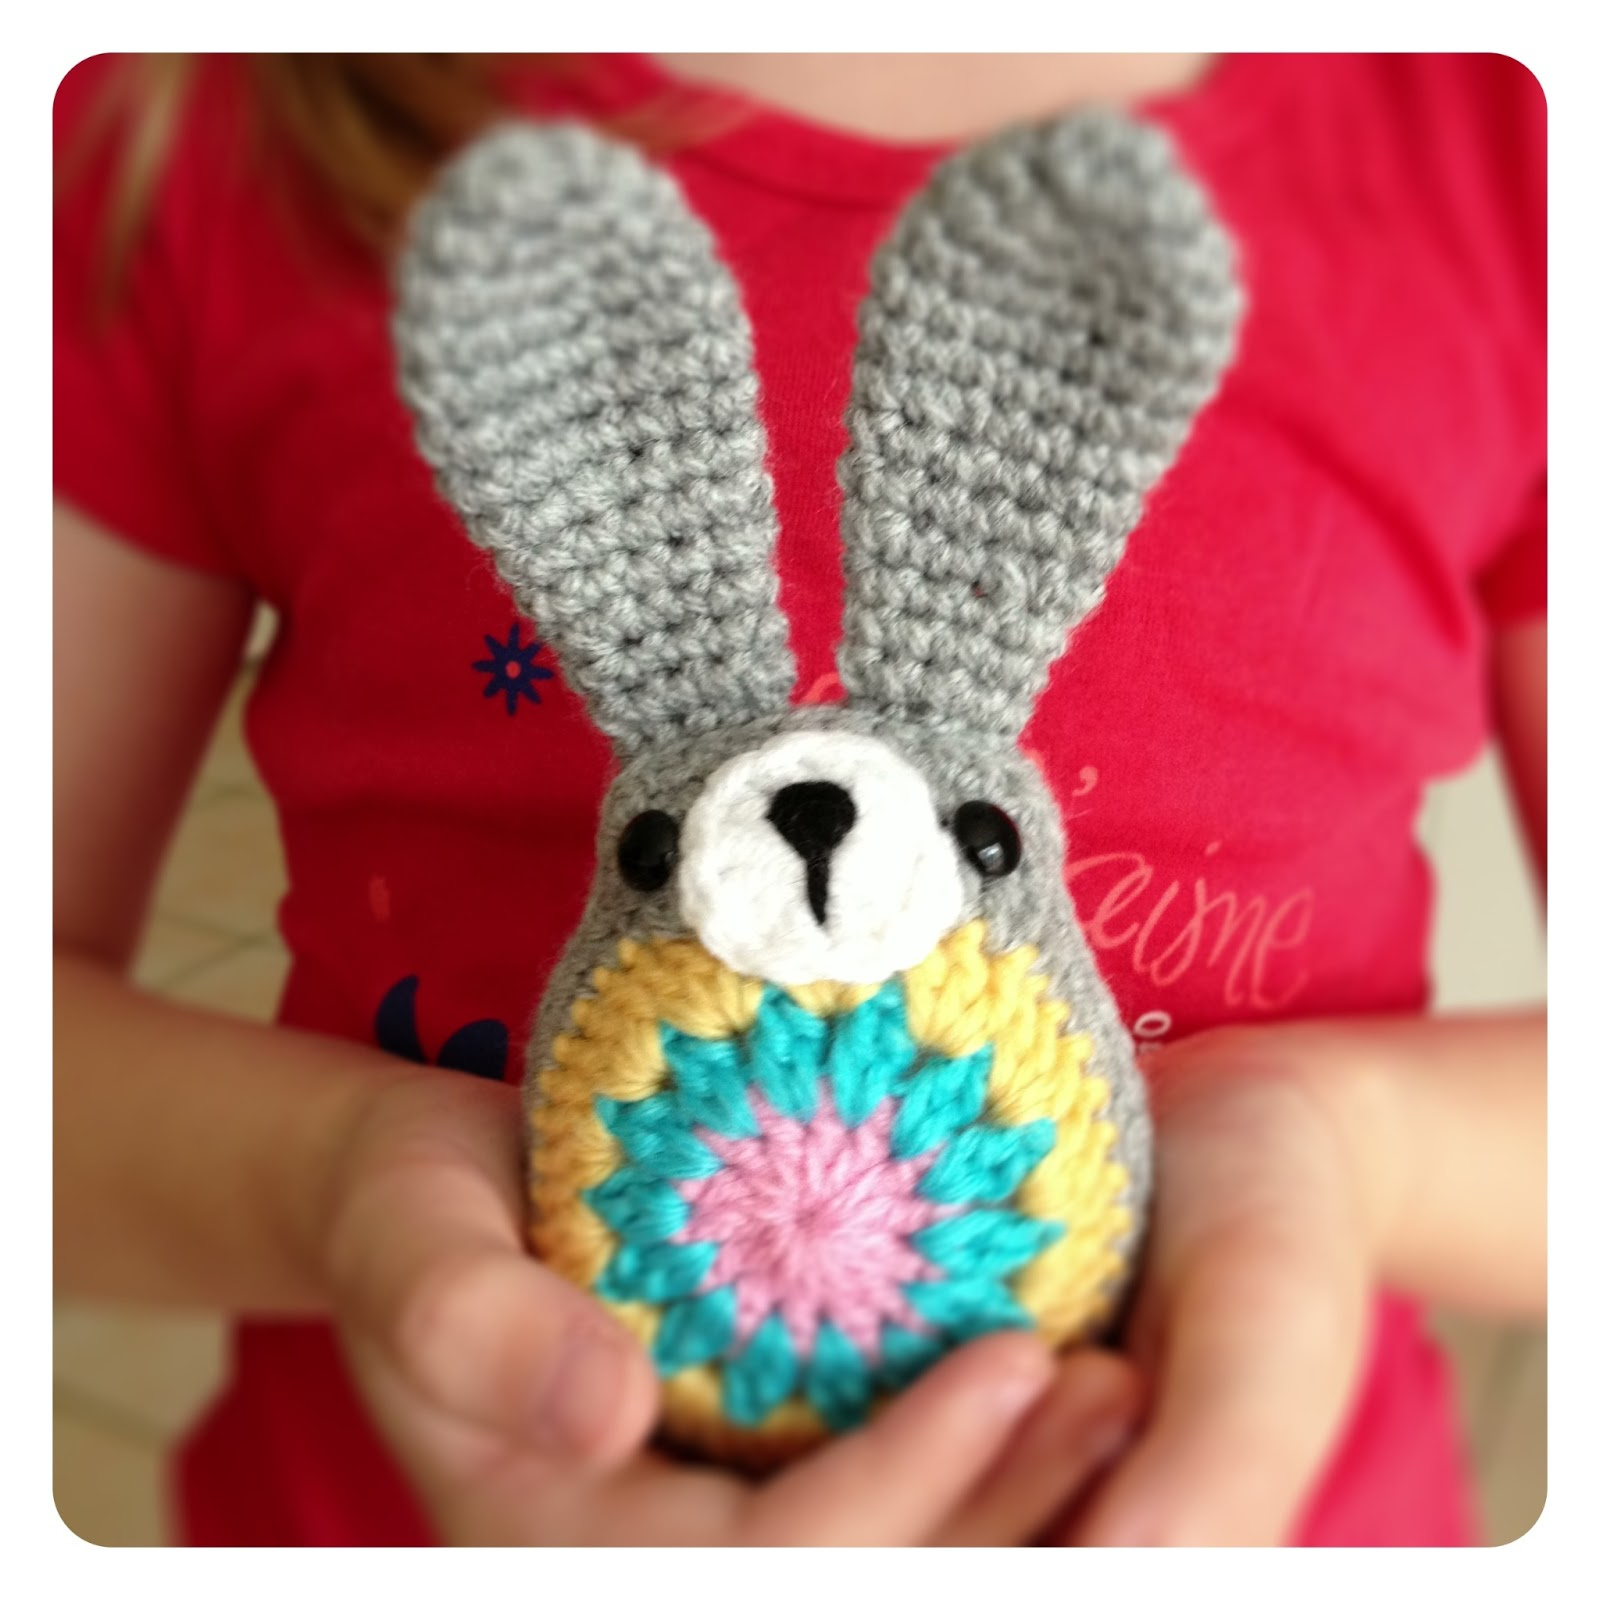 Sheree forcier blog crochet easter bunny if youd like to make one to you can find the free tutorial here it was really easy to follow just crochet all the bits you need sew them all together ccuart Choice Image